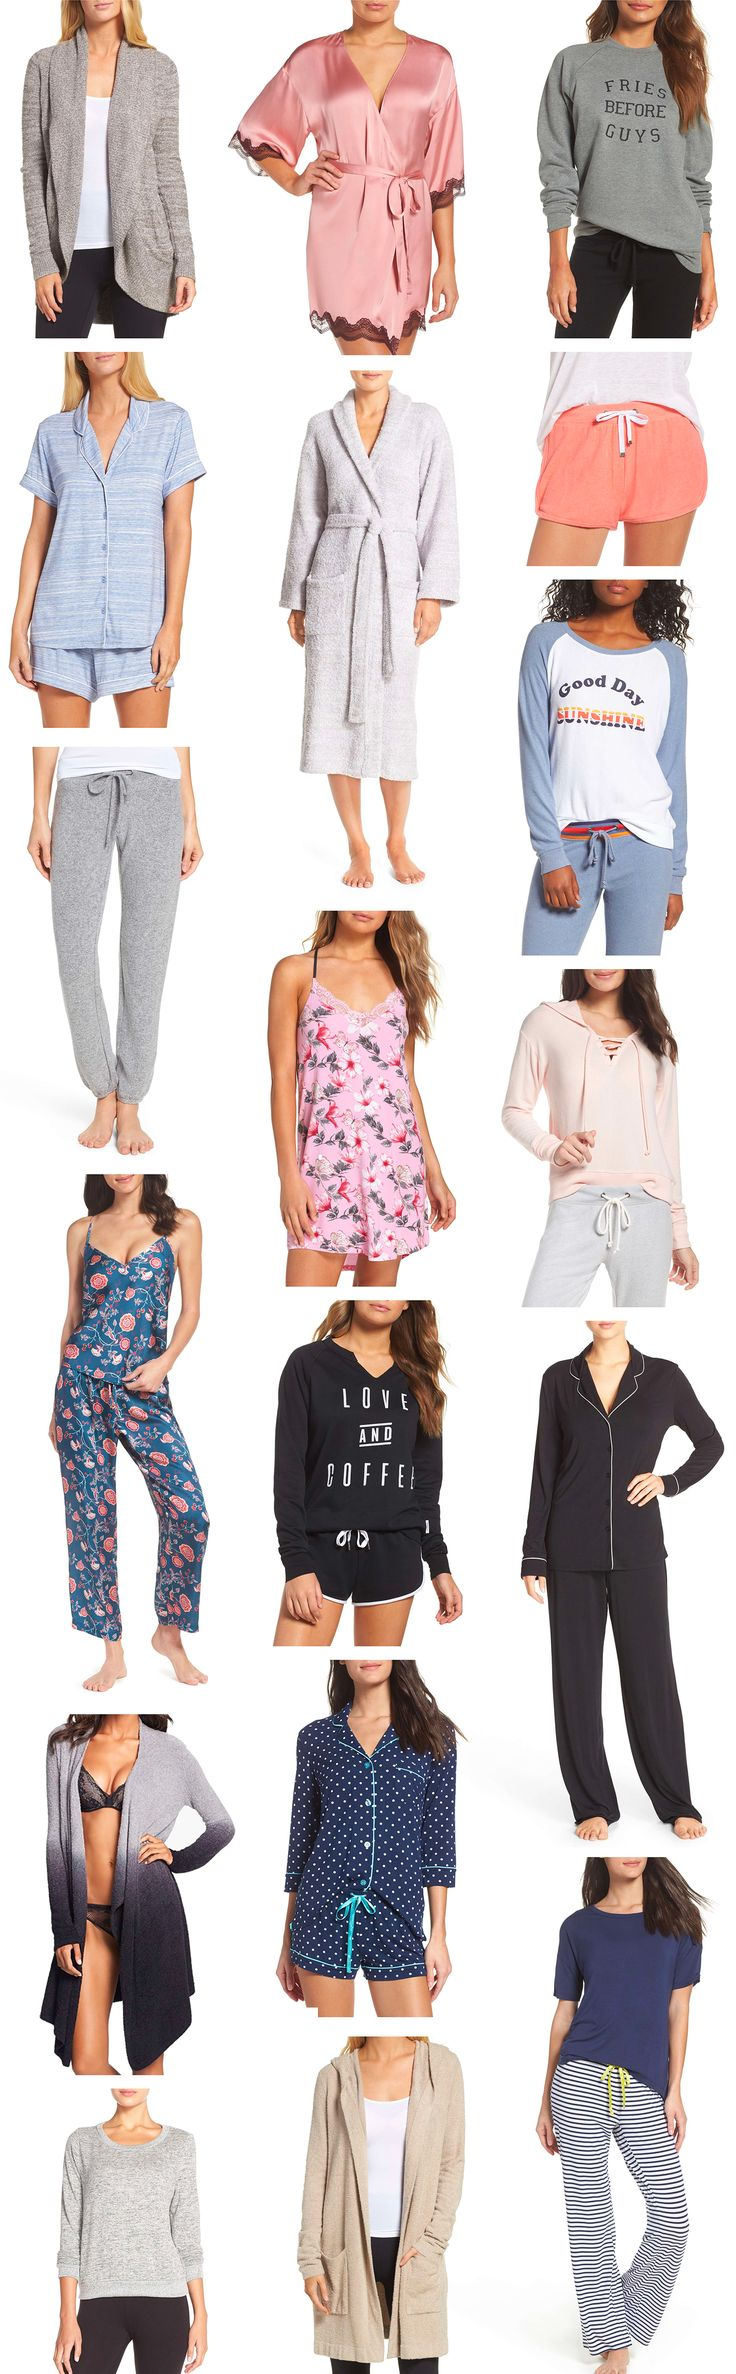 Looking for cute, comfortable, and affordable sleep clothes and loungewear? Check out this roundup of the best sleep and loungewear deals from the Nordstrom Anniversary Sale from Orlando, Florida fashion blogger Ashley Brooke Nicholas. There are so many cute pajama sets, cozy sweaters (including three varieties of Barefoot Dreams sweaters), robes, and more!